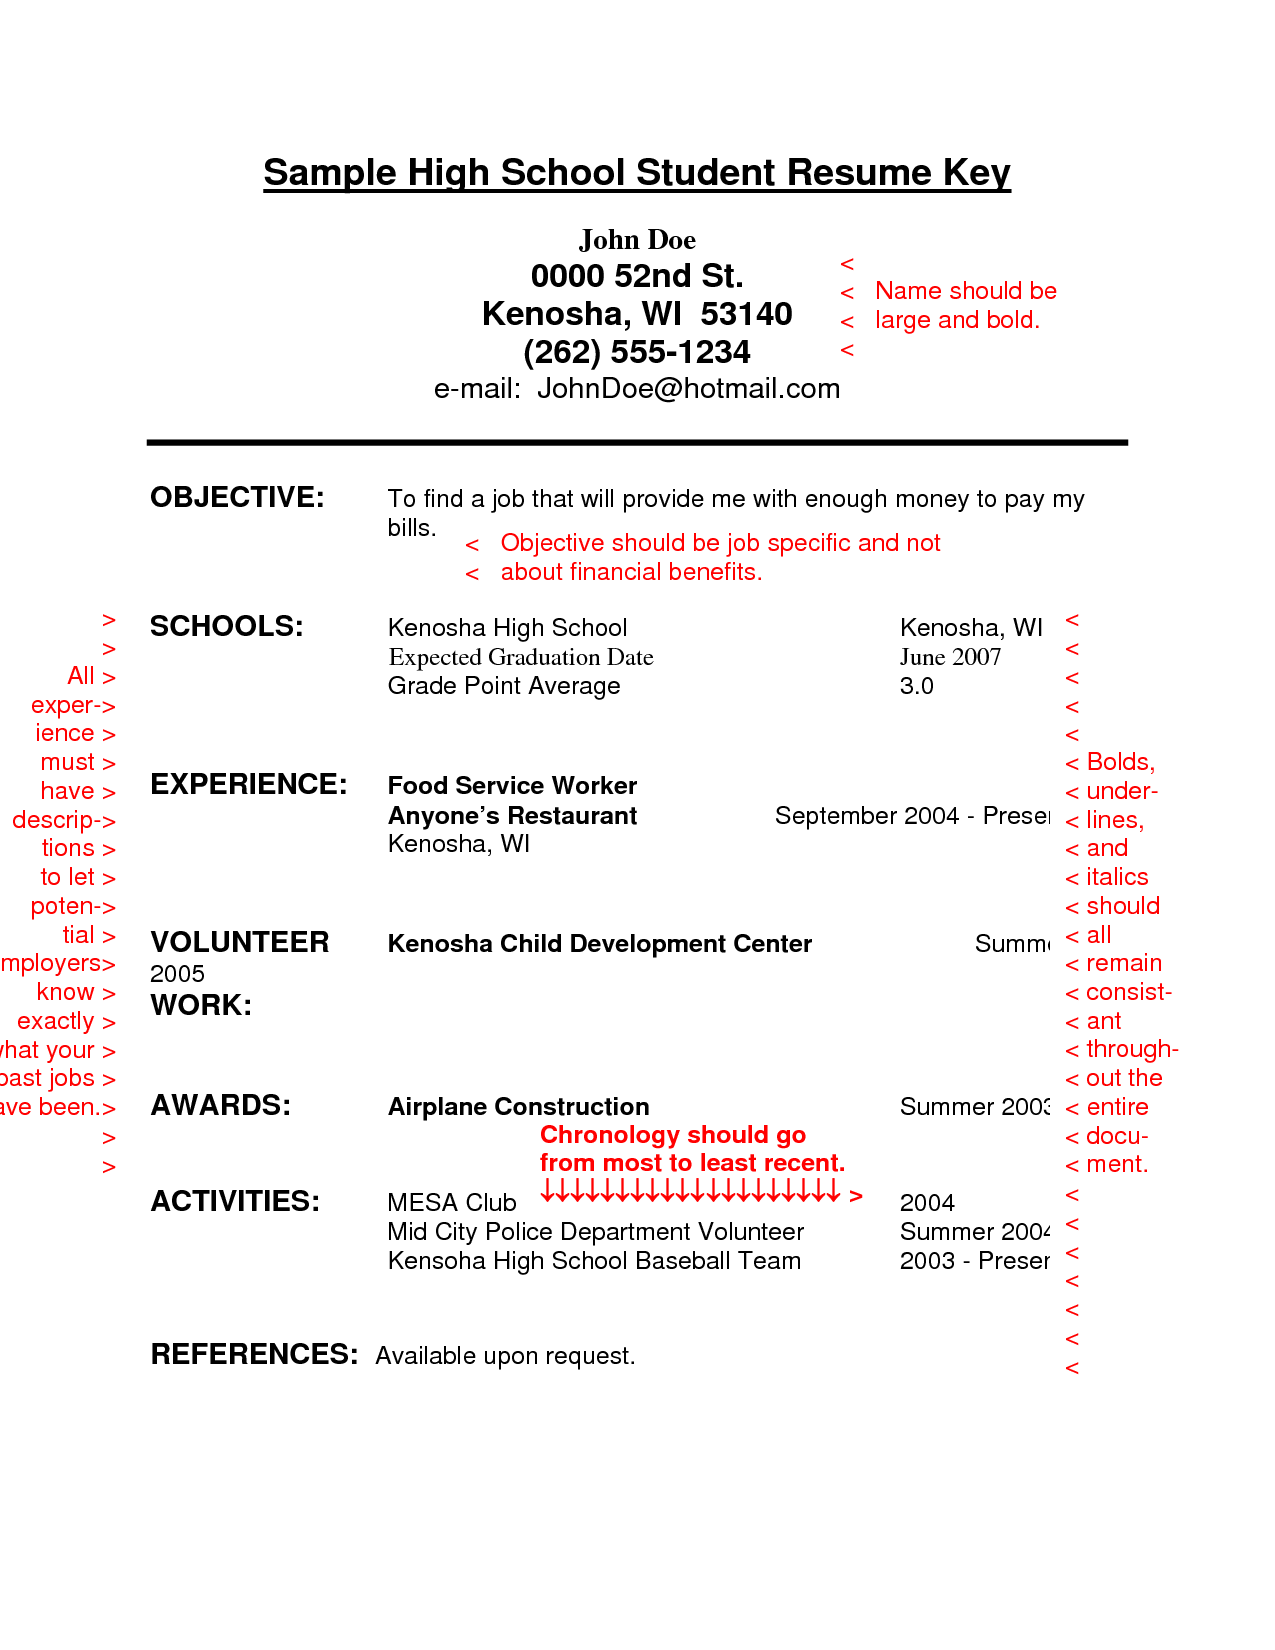 resume sample for high school students no experience resume sample for high school students no experience